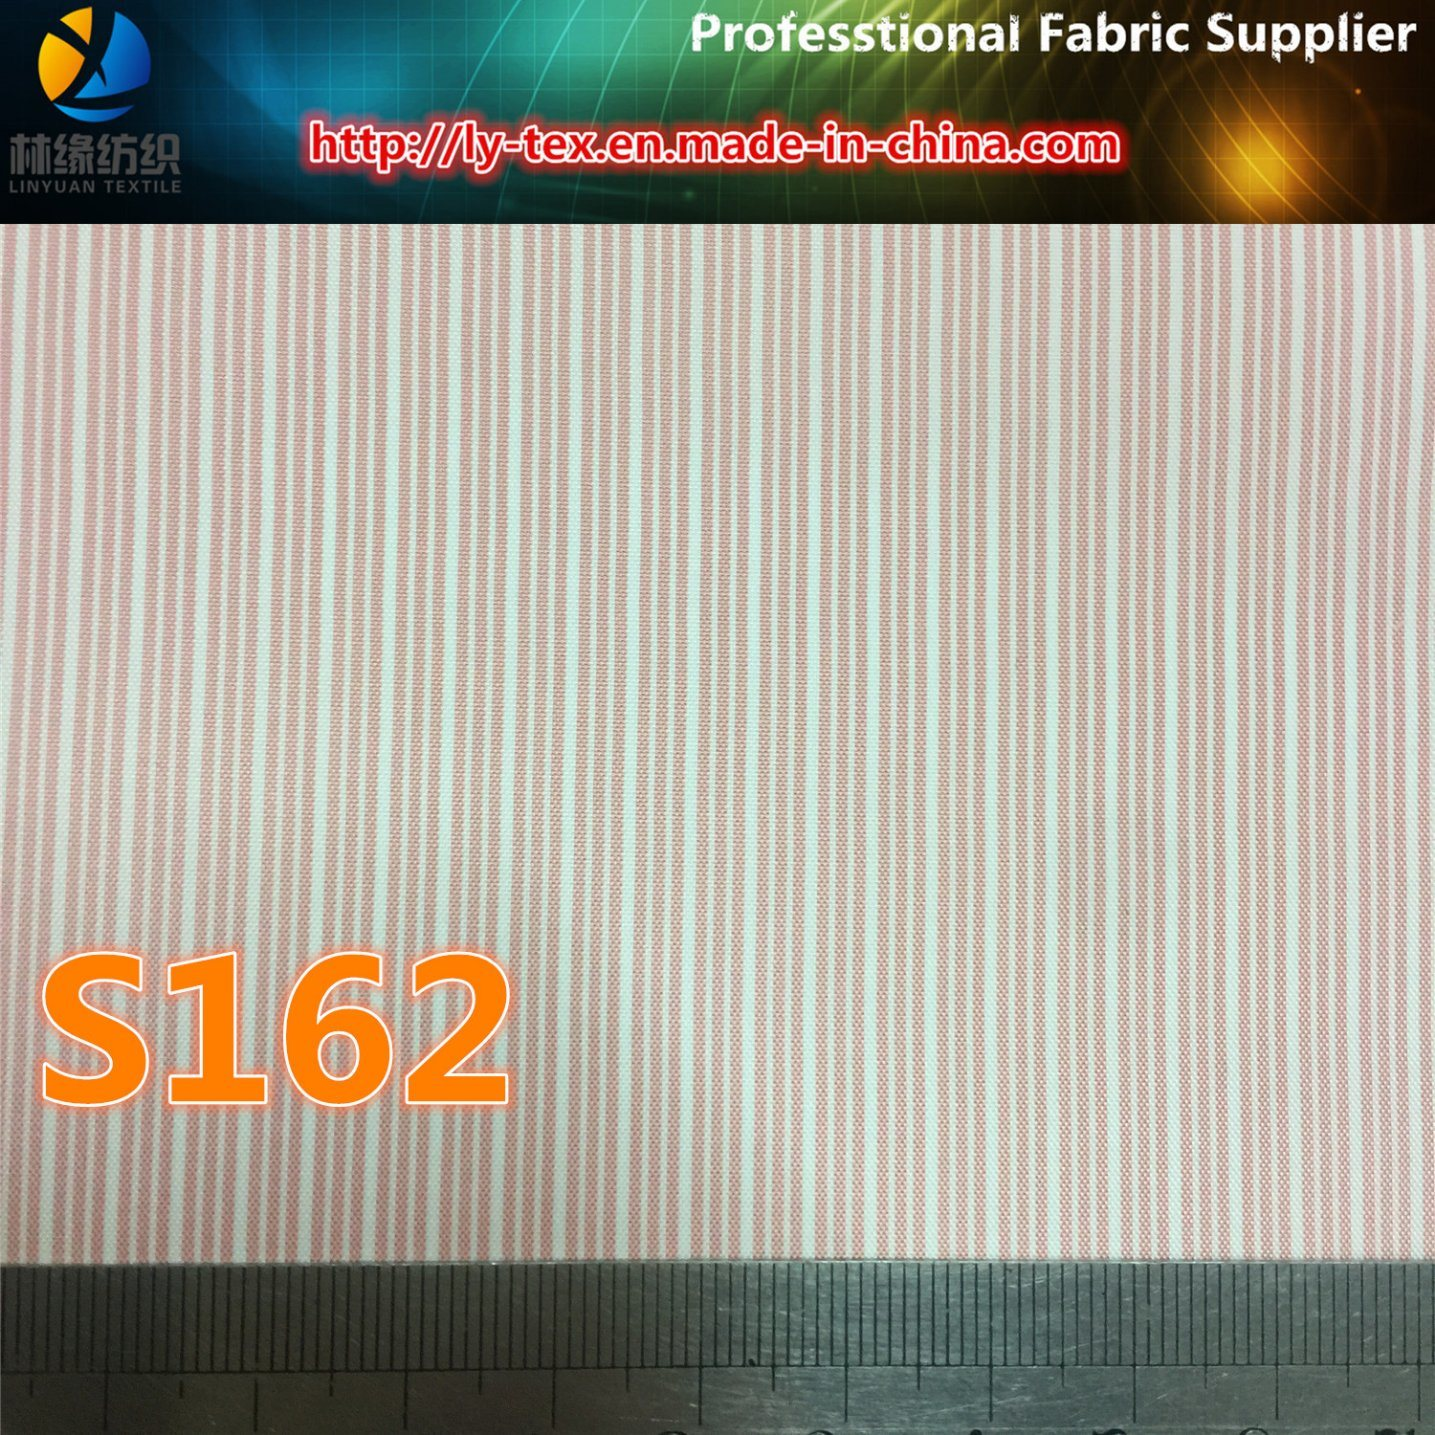 Suit Sleeve Lining in Yarn Dyed Stripe Fabric for Garment (S162.182) pictures & photos